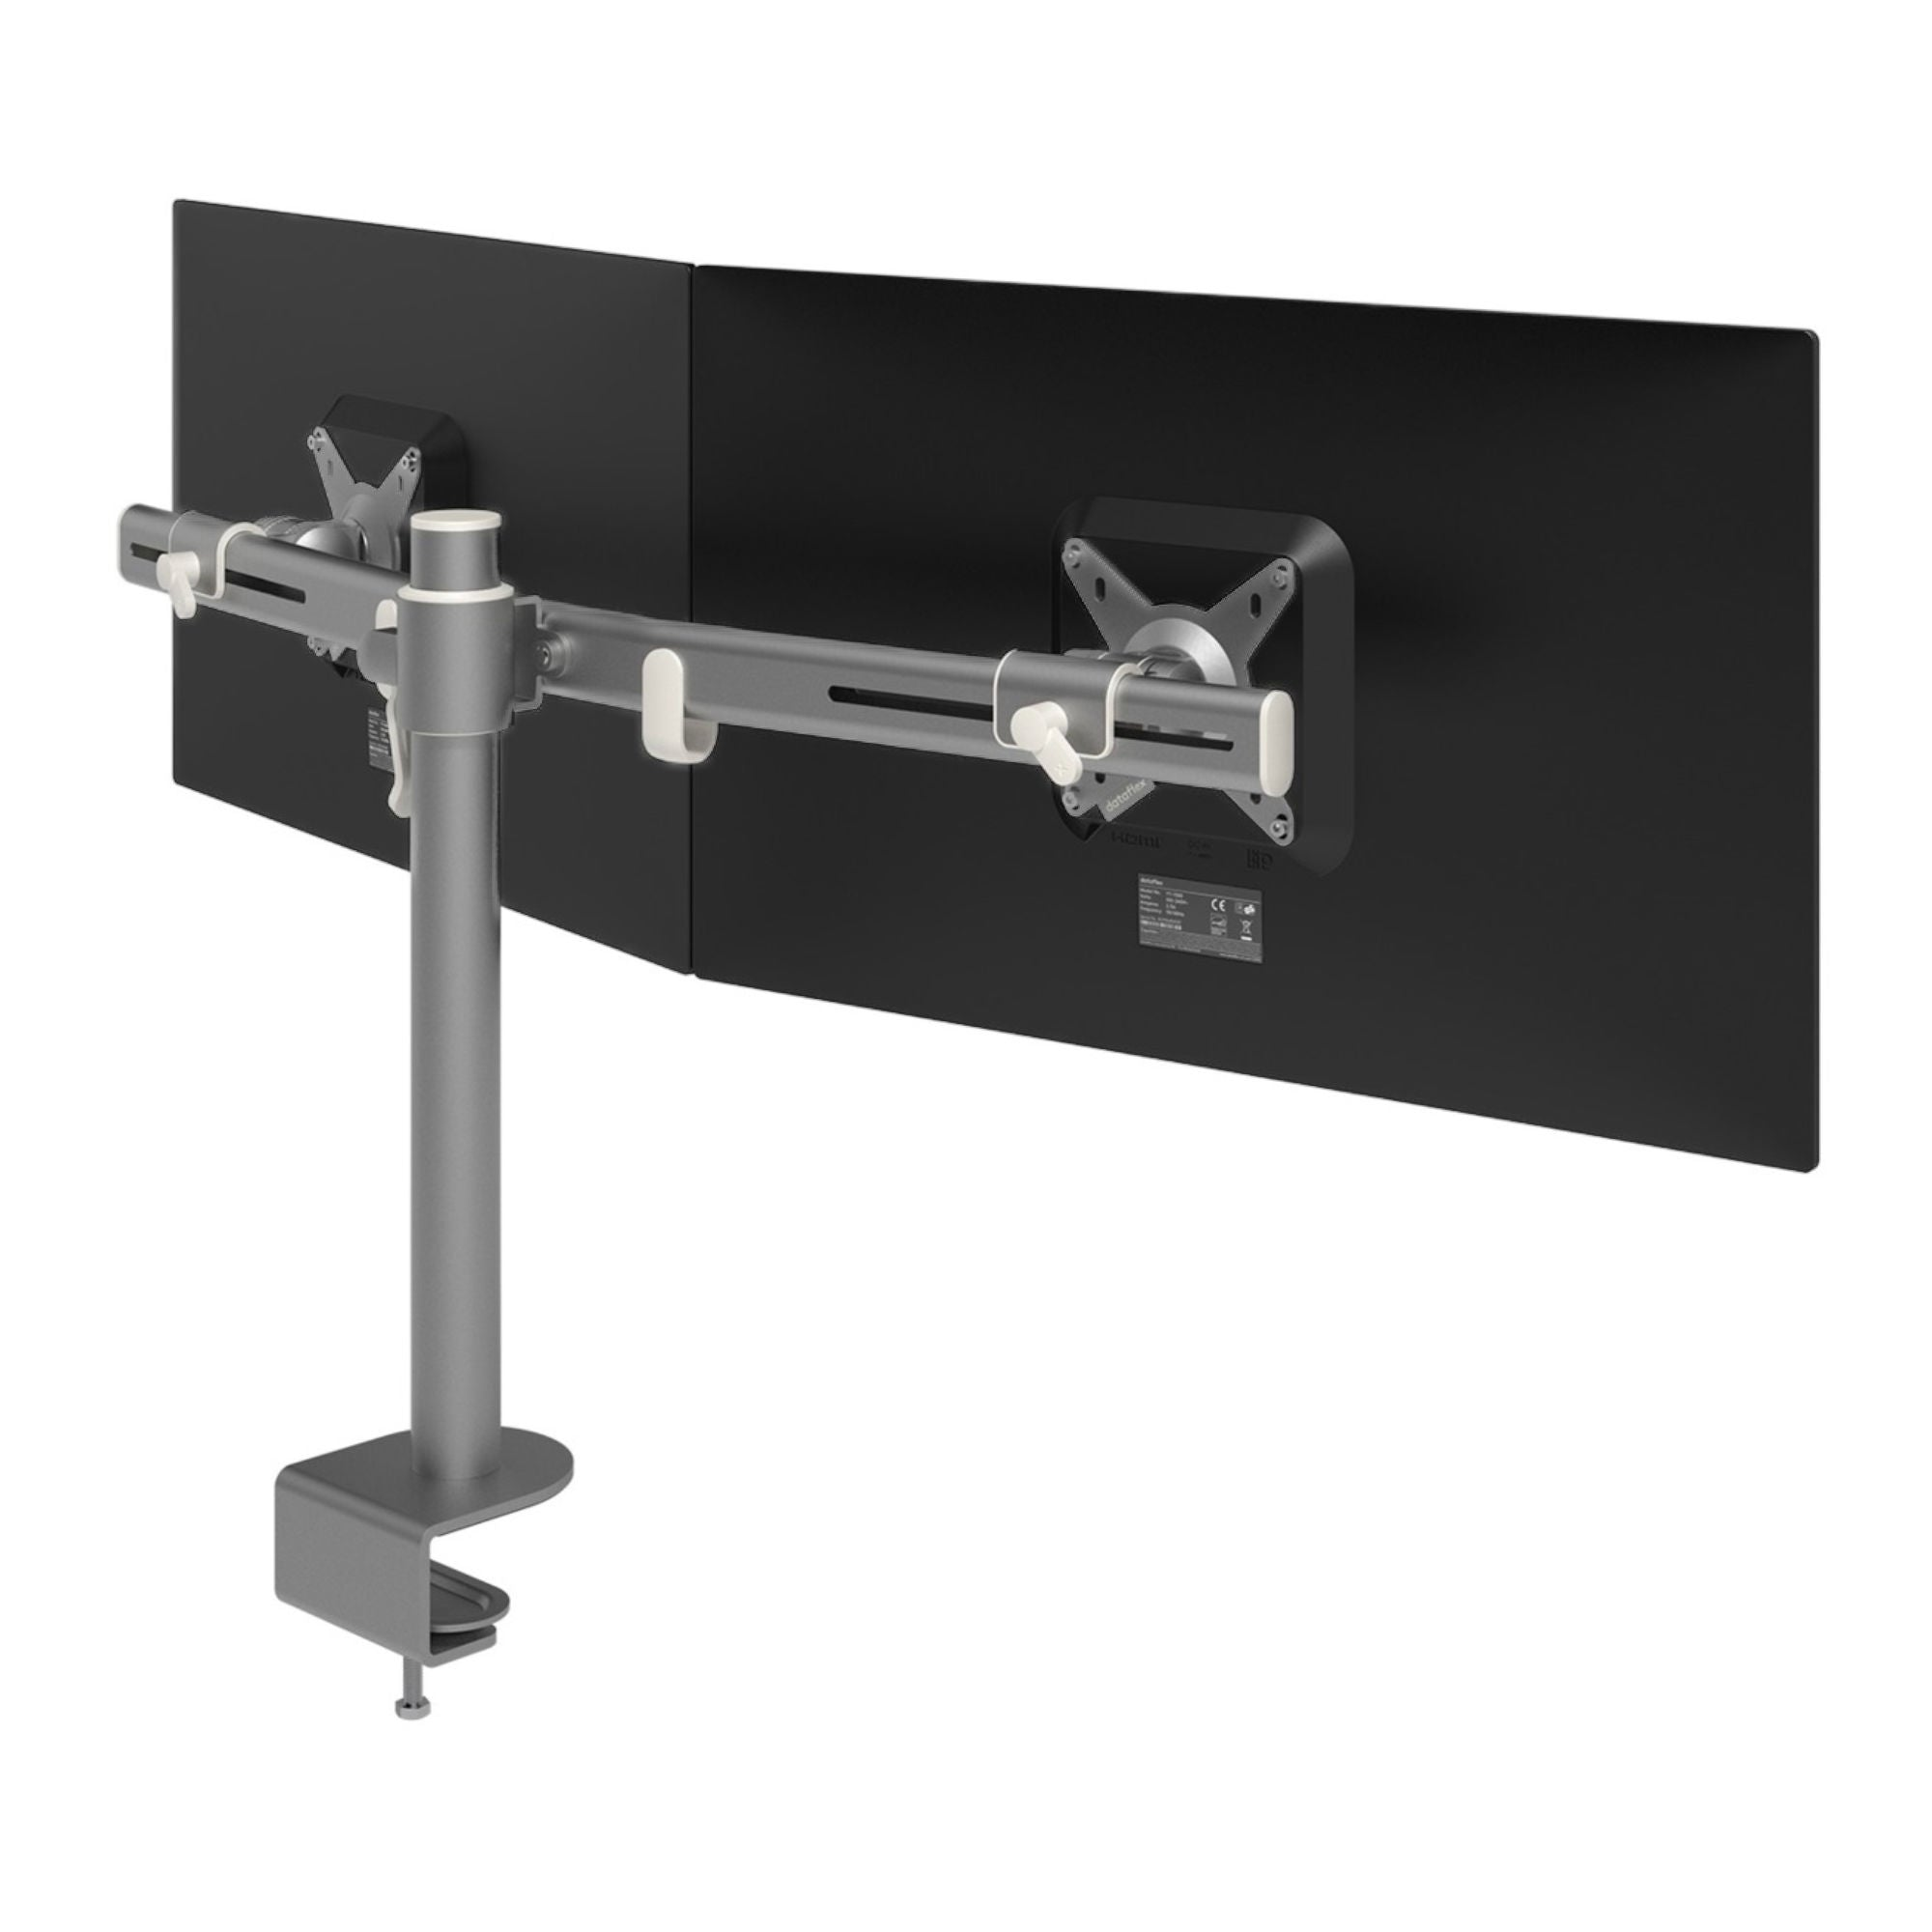 Dataflex Viewmate Dual Monitor Arm